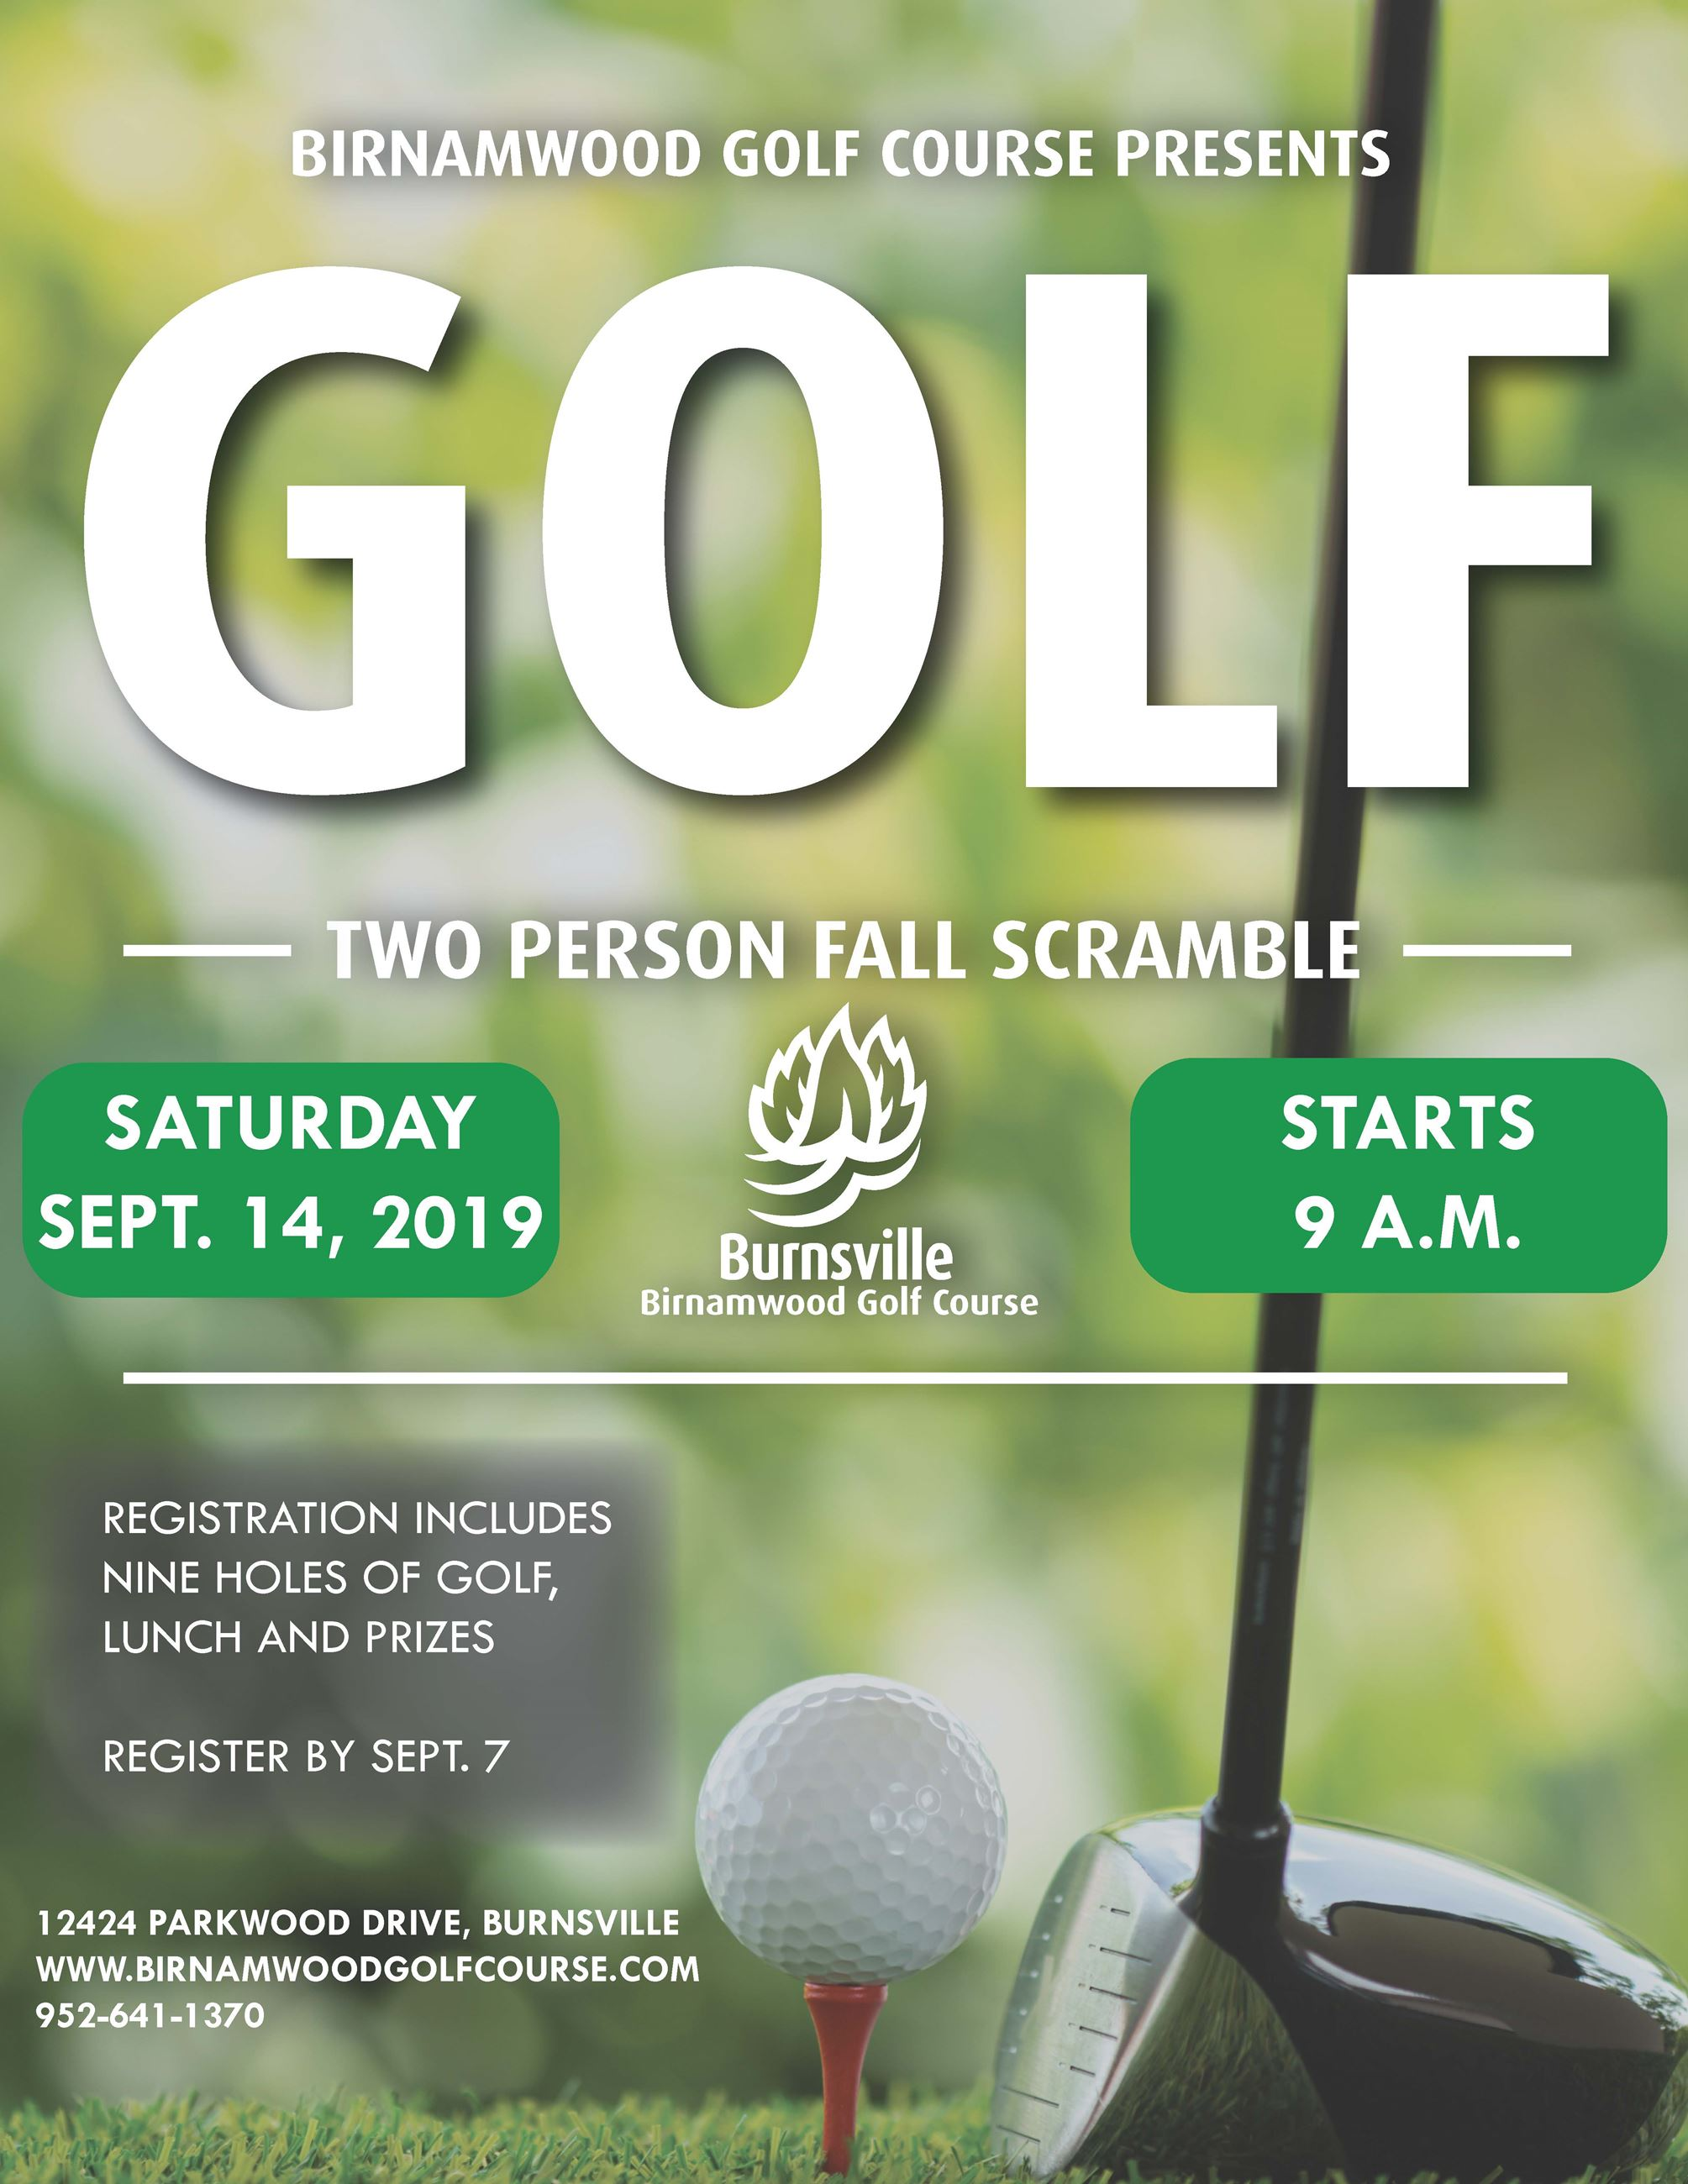 Flyer for Two Person Fall Scramble Tournament at Birnamwood Golf Course. Opens in new window